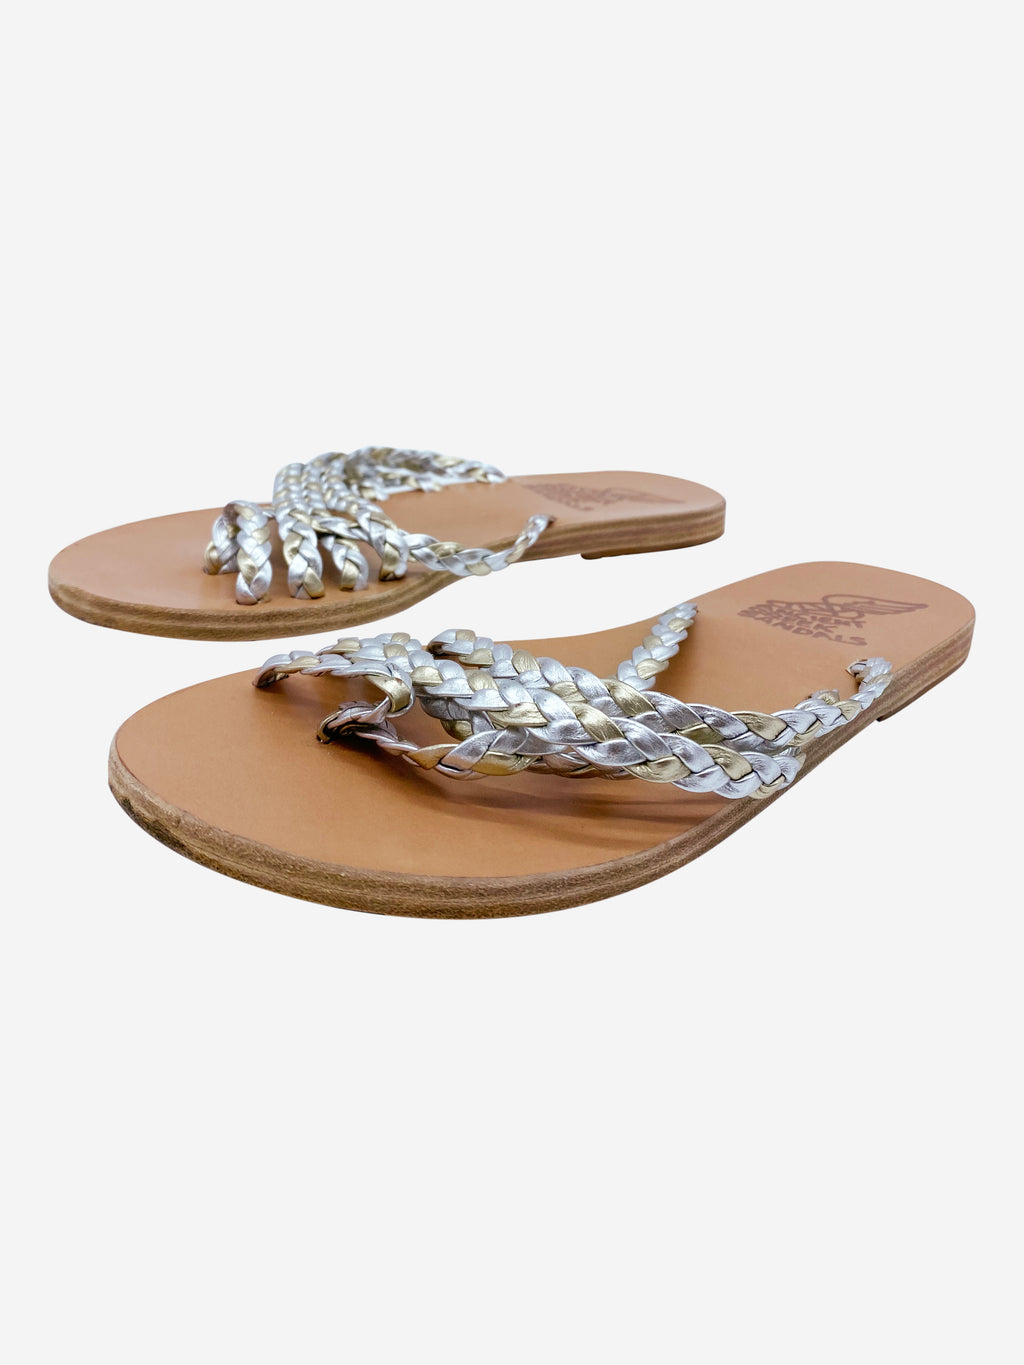 Silver and gold braided leather sandals - size 5